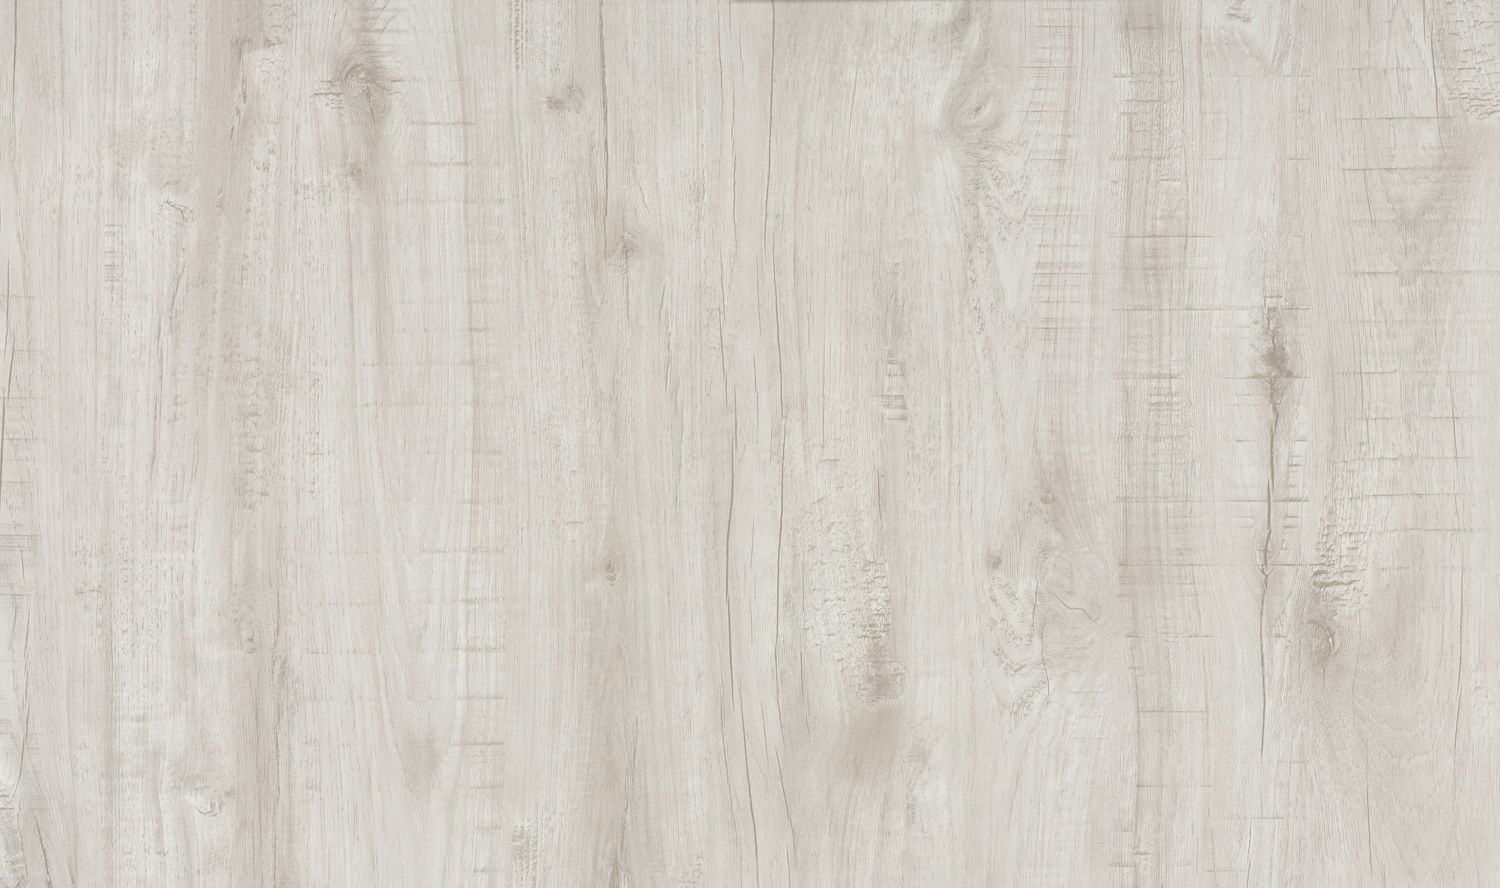 1MM international, North Supreme, South Supreme Wooden Laminate Texture-Sundek International